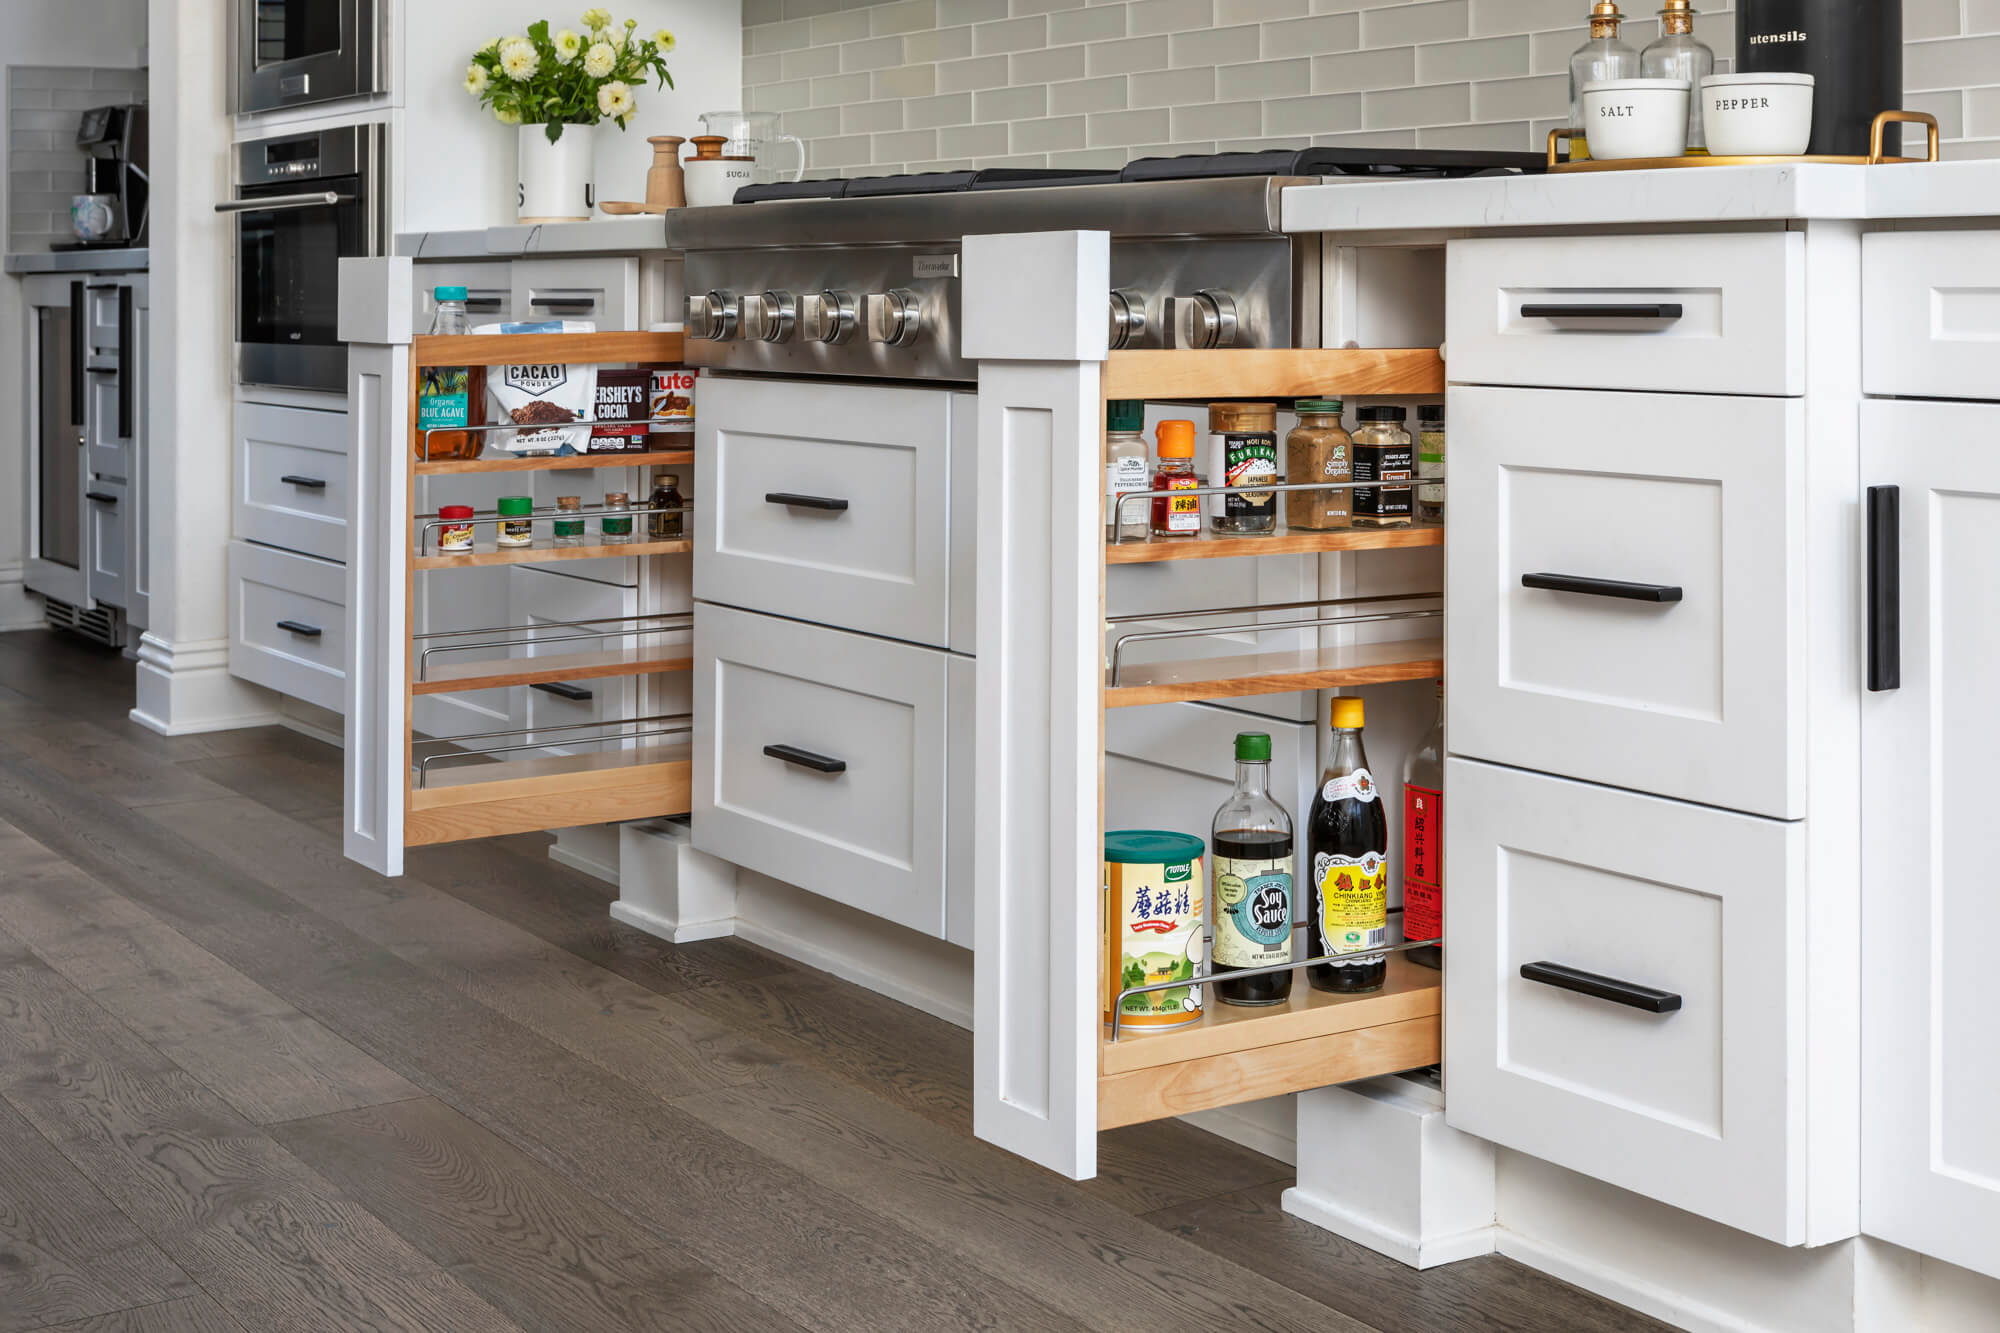 Pull-out-spice-rack